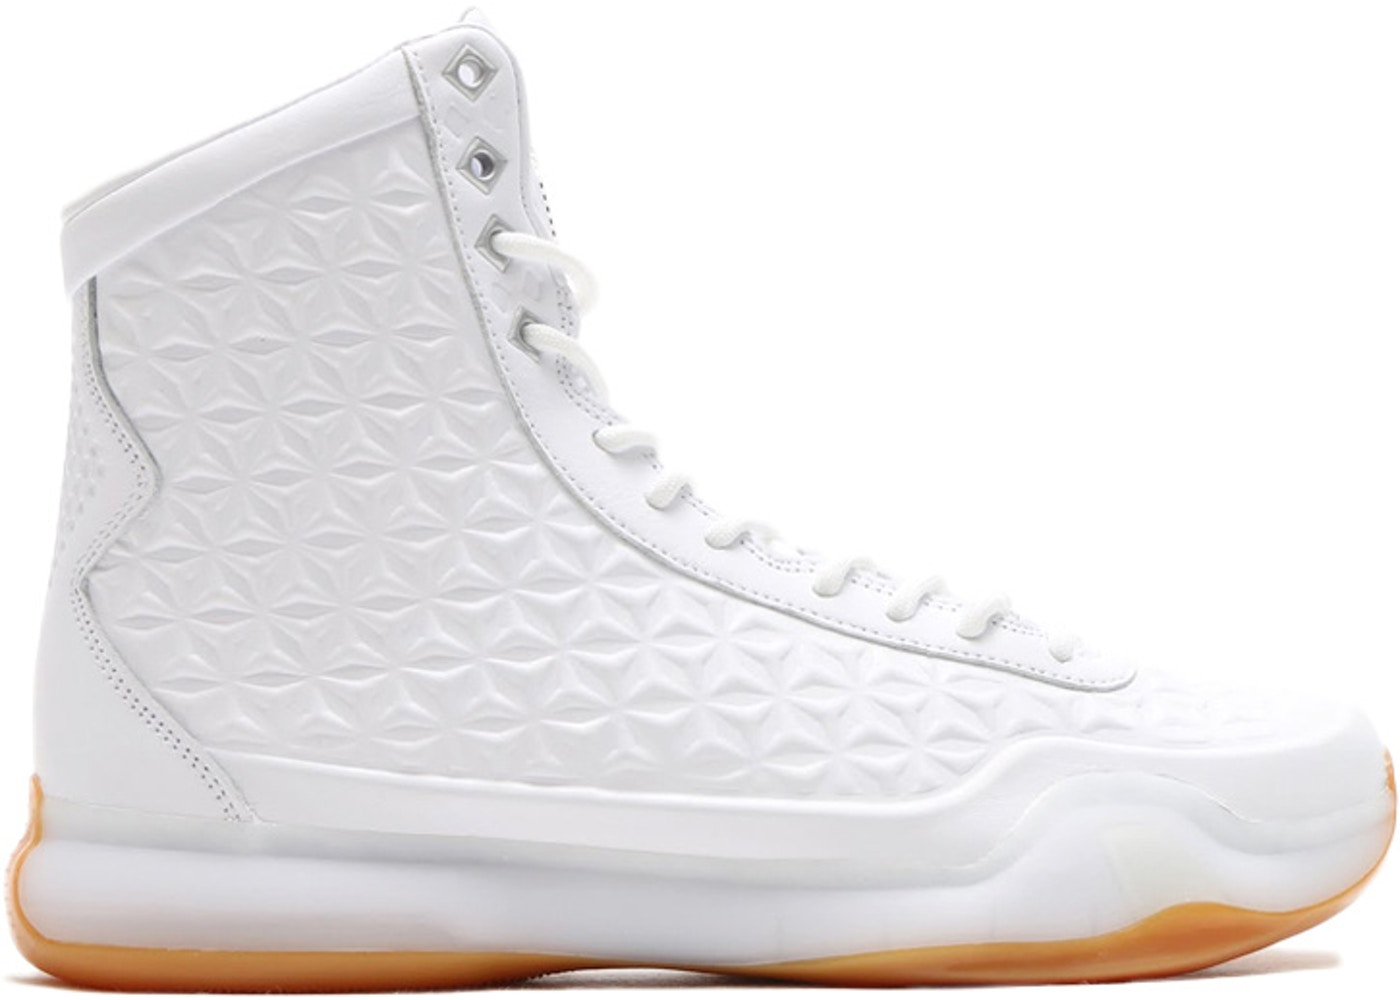 uk availability 7678f 7f657 Kobe 10 High EXT White Gum - 822950-100